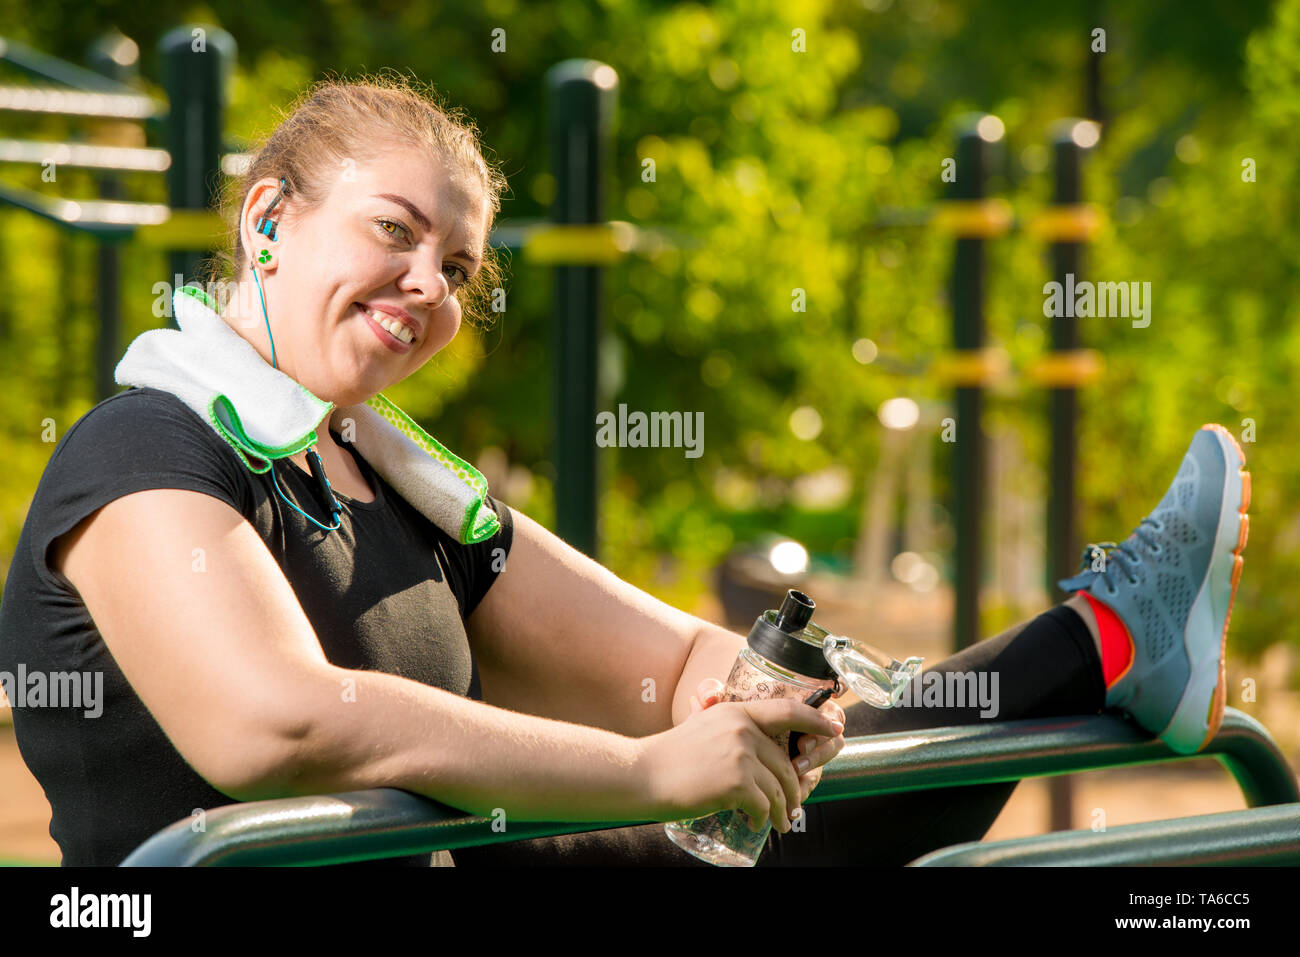 flexible plus size woman engaged with a port on the playground in a park on a summer morning - Stock Image